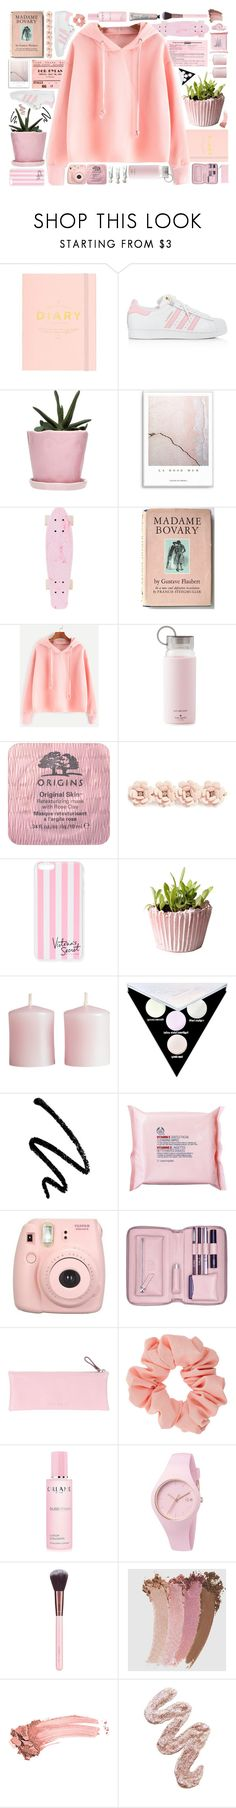 """""""☼ YOU'LL ALWAYS BE THE ONE i LOVE THE MOST ☼"""" by unofficialpeaches ❤ liked on Polyvore featuring Mara-Mi, adidas, Dot & Bo, WithChic, Kate Spade, Origins, J.Crew, Victoria's Secret, H&M and Kat Von D"""